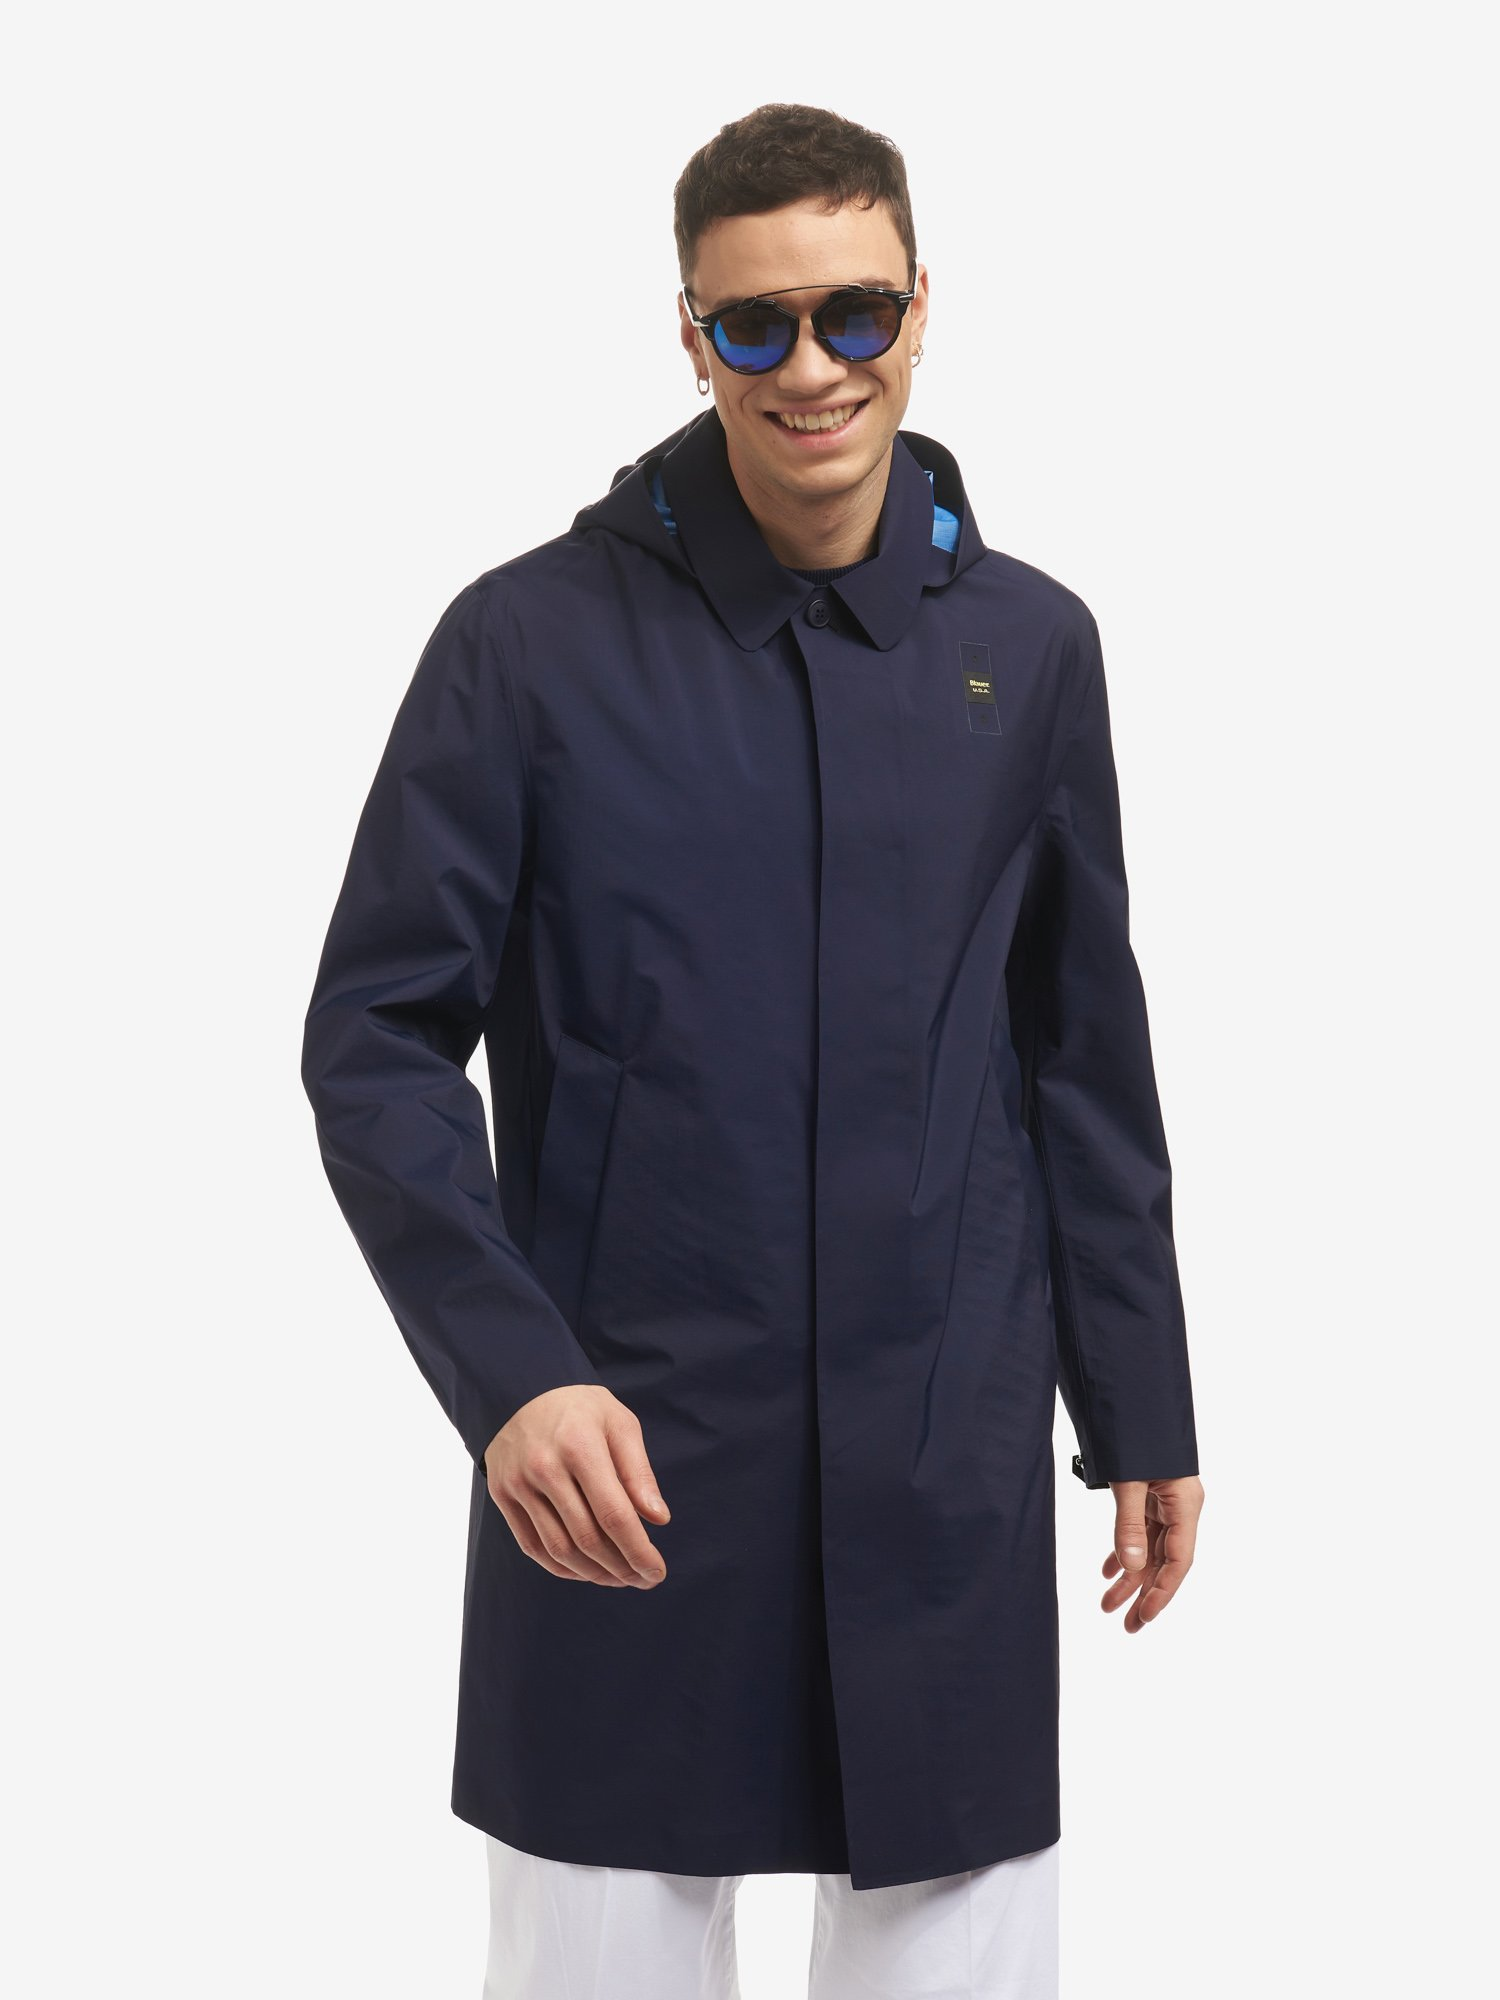 HERREN-TRENCH IN MIKRO-RIPP JIM - Blauer